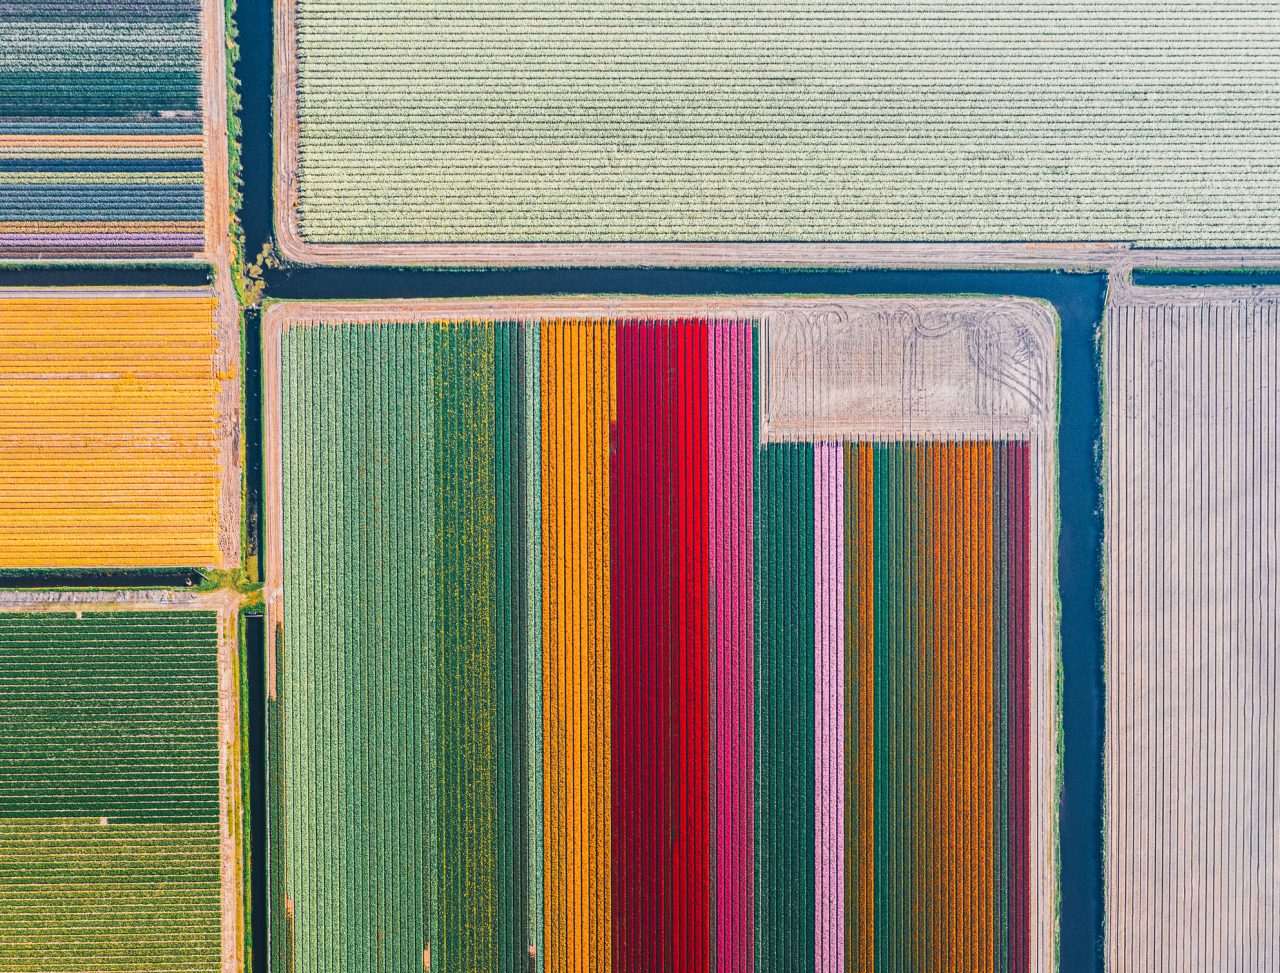 A daytime view of colourful tulips in a row from a high viewpoint